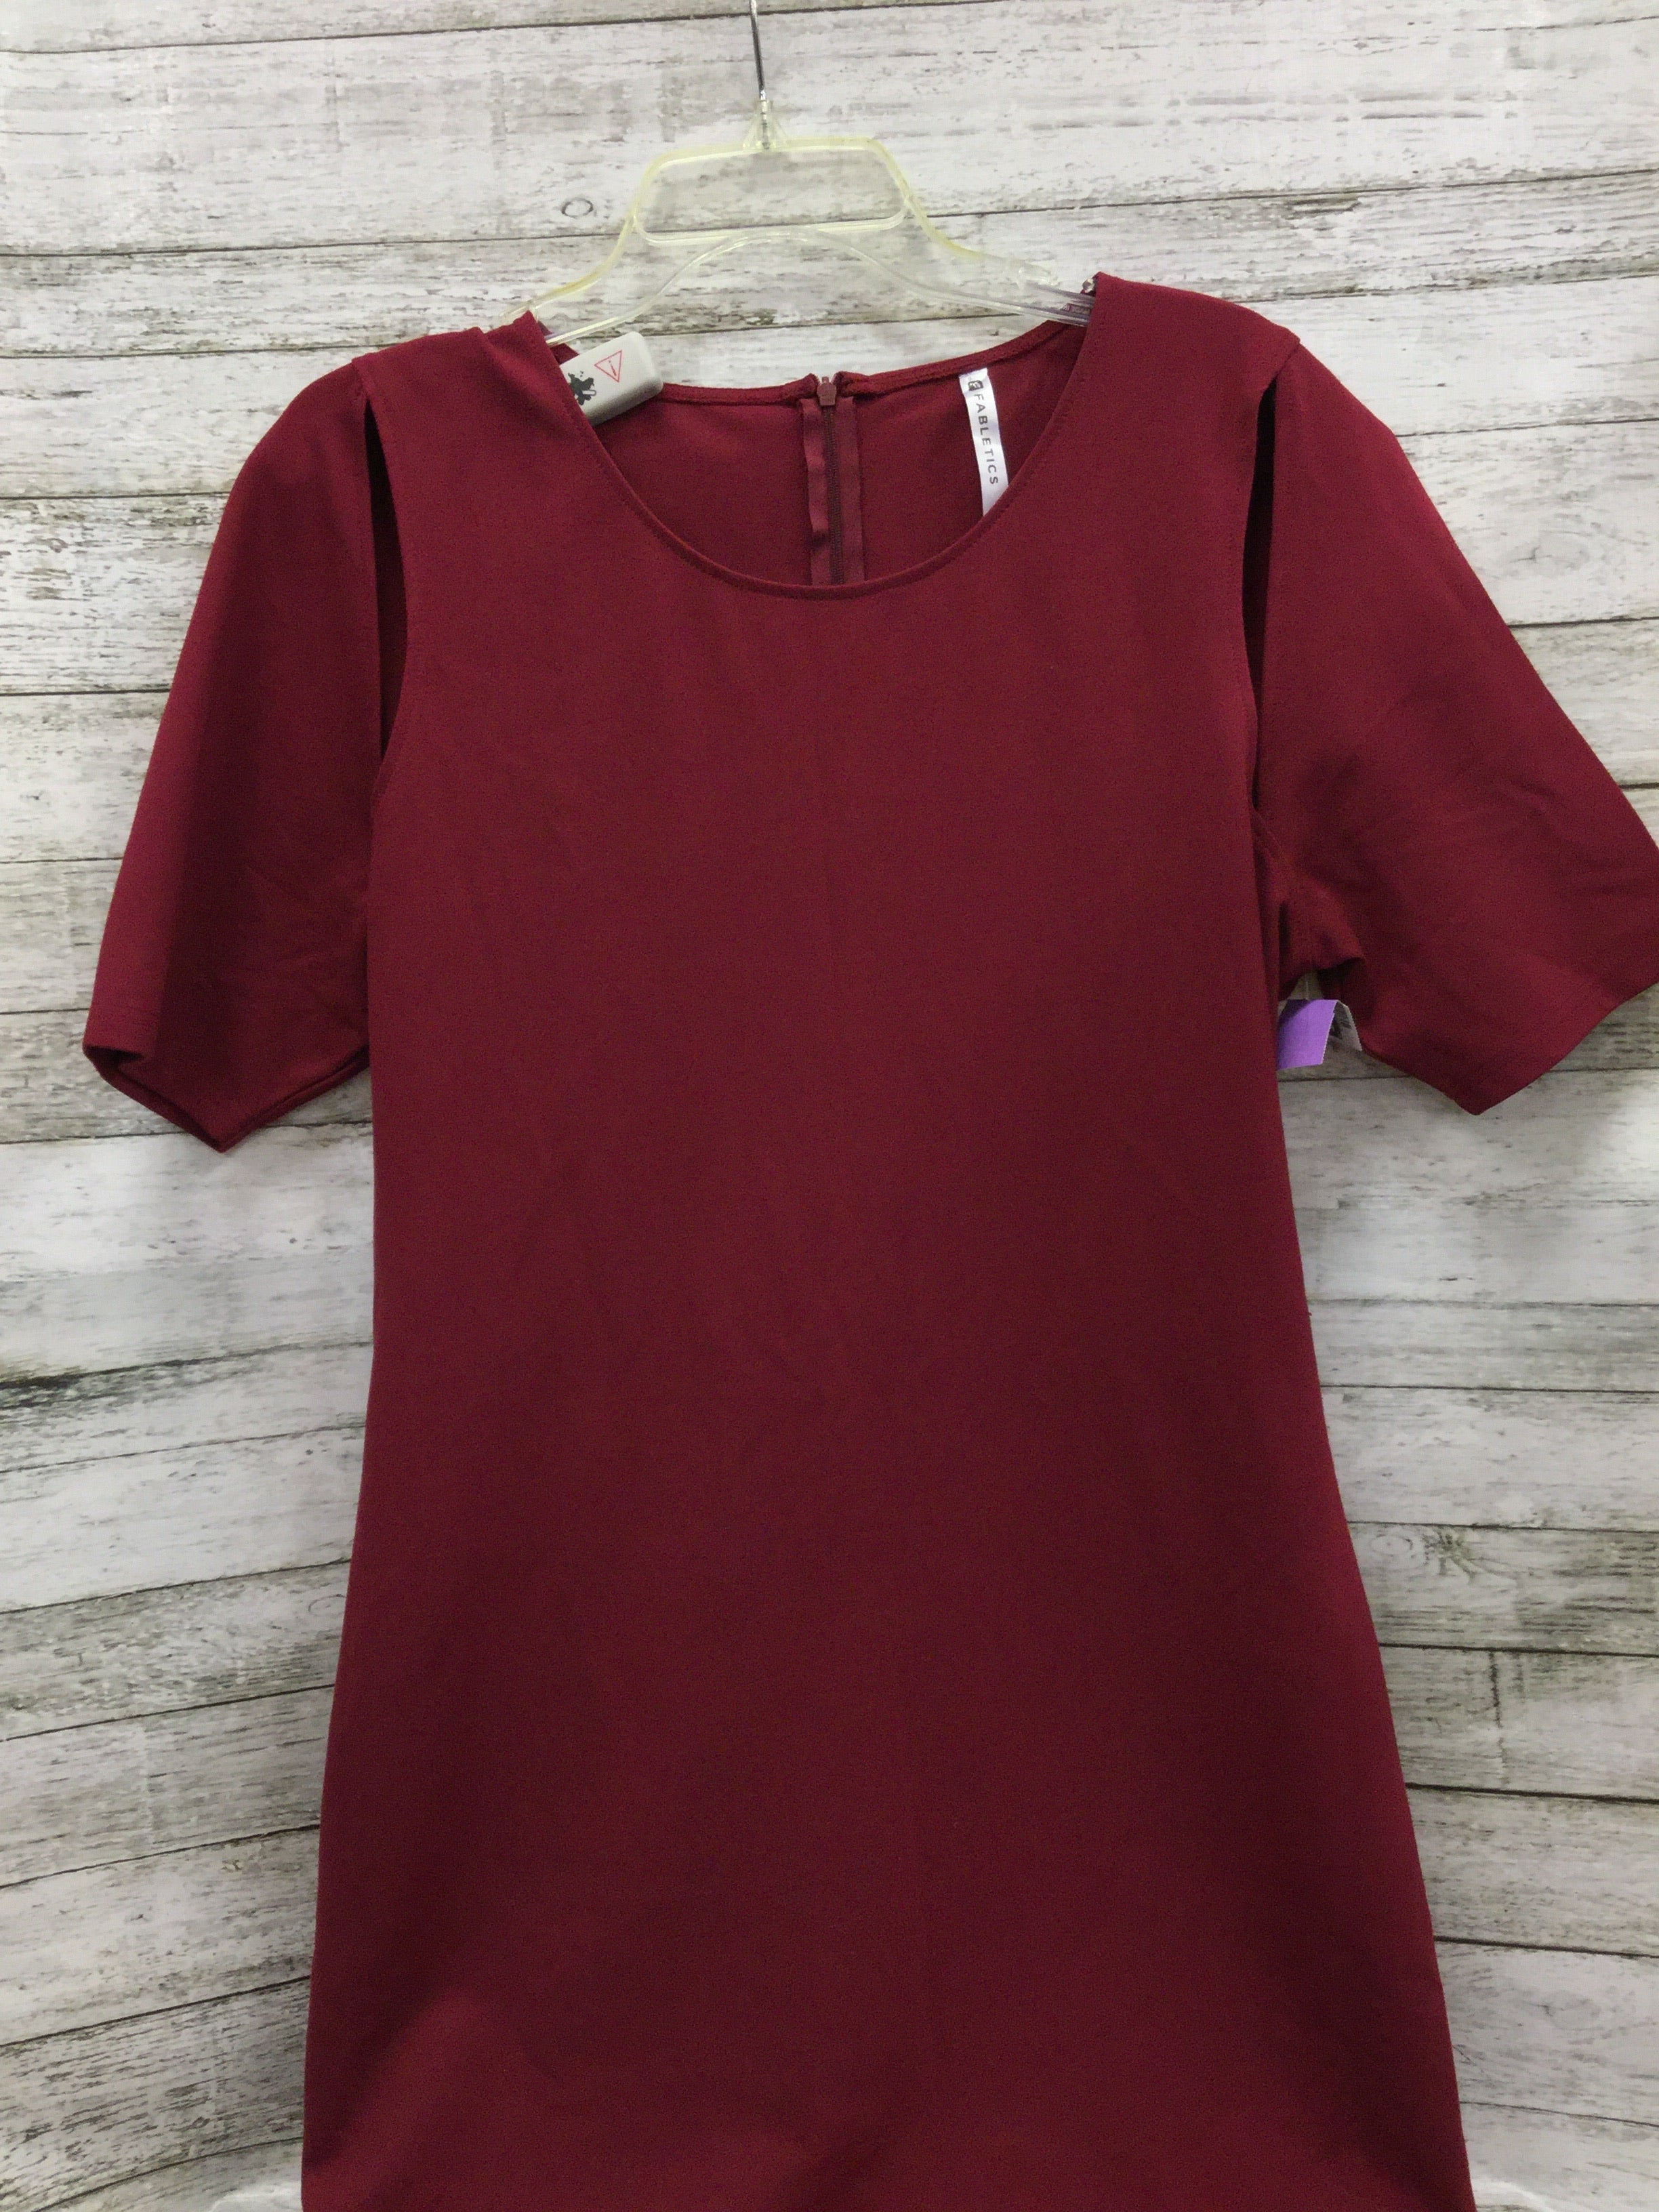 Primary Photo - BRAND: FABLETICS , STYLE: DRESS SHORT SHORT SLEEVE , COLOR: MAROON , SIZE: 1X , OTHER INFO: NEW! , SKU: 127-4559-12428, , NEW WITH TAGS FABLETICS DRESS.